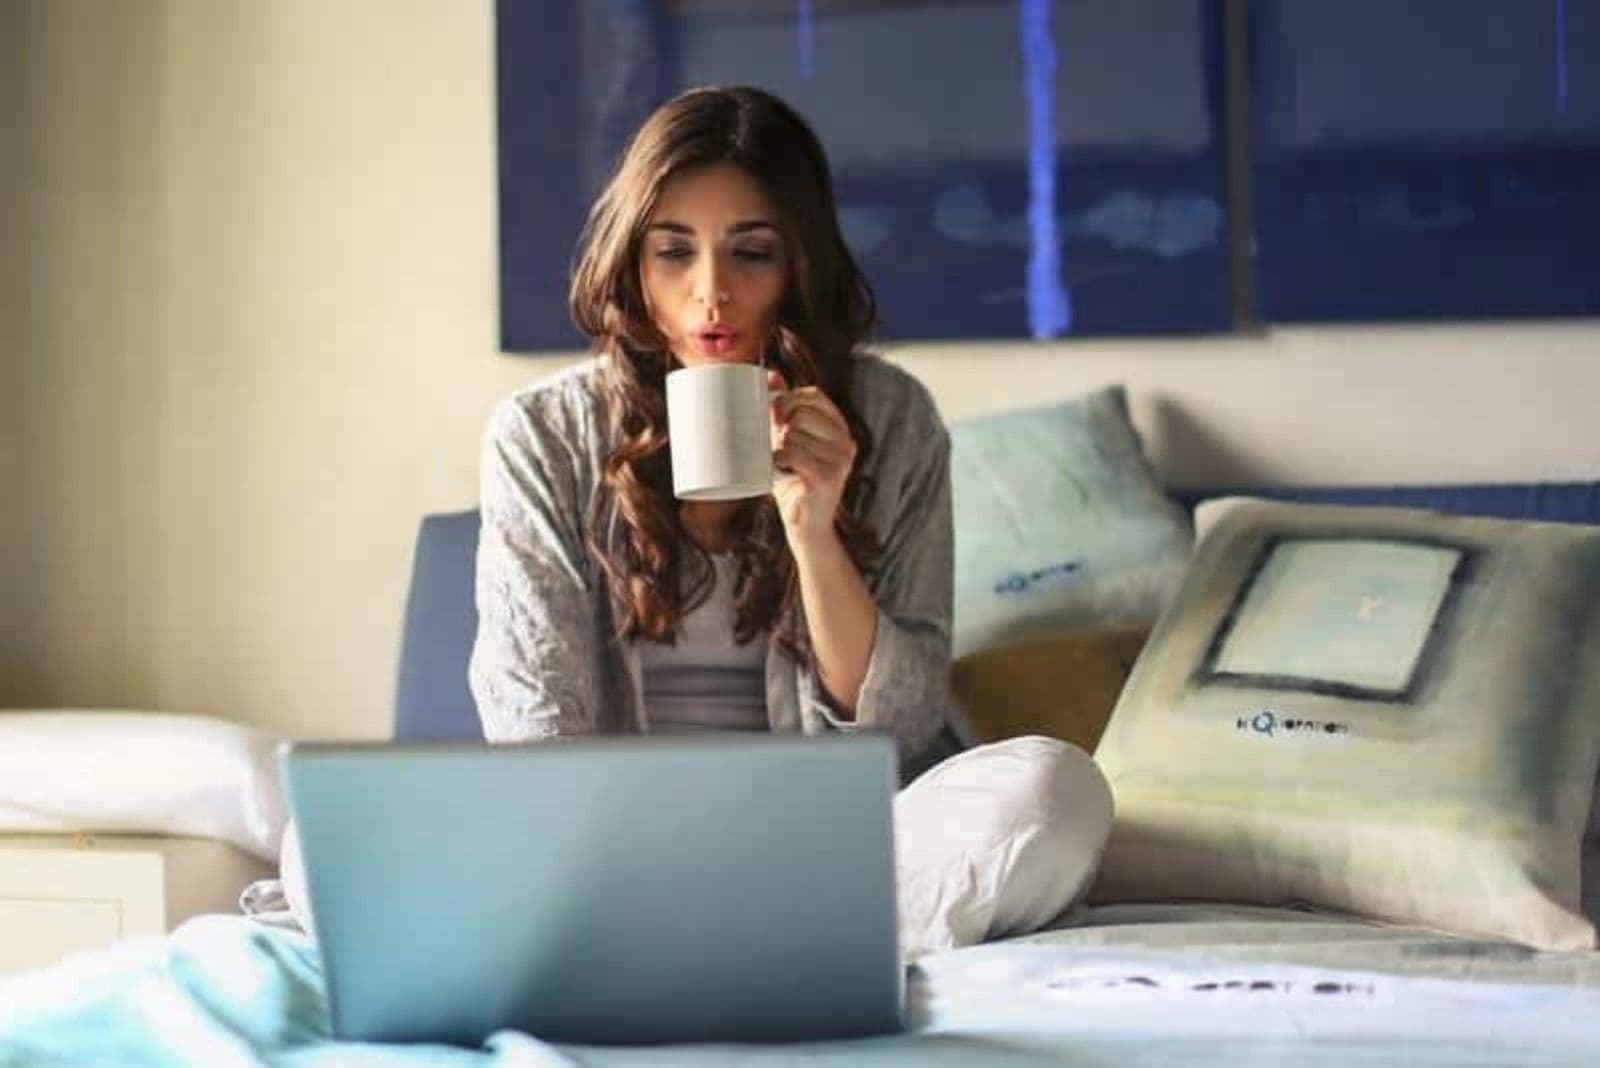 woman sitting in bed drinking coffee and typing on laptop